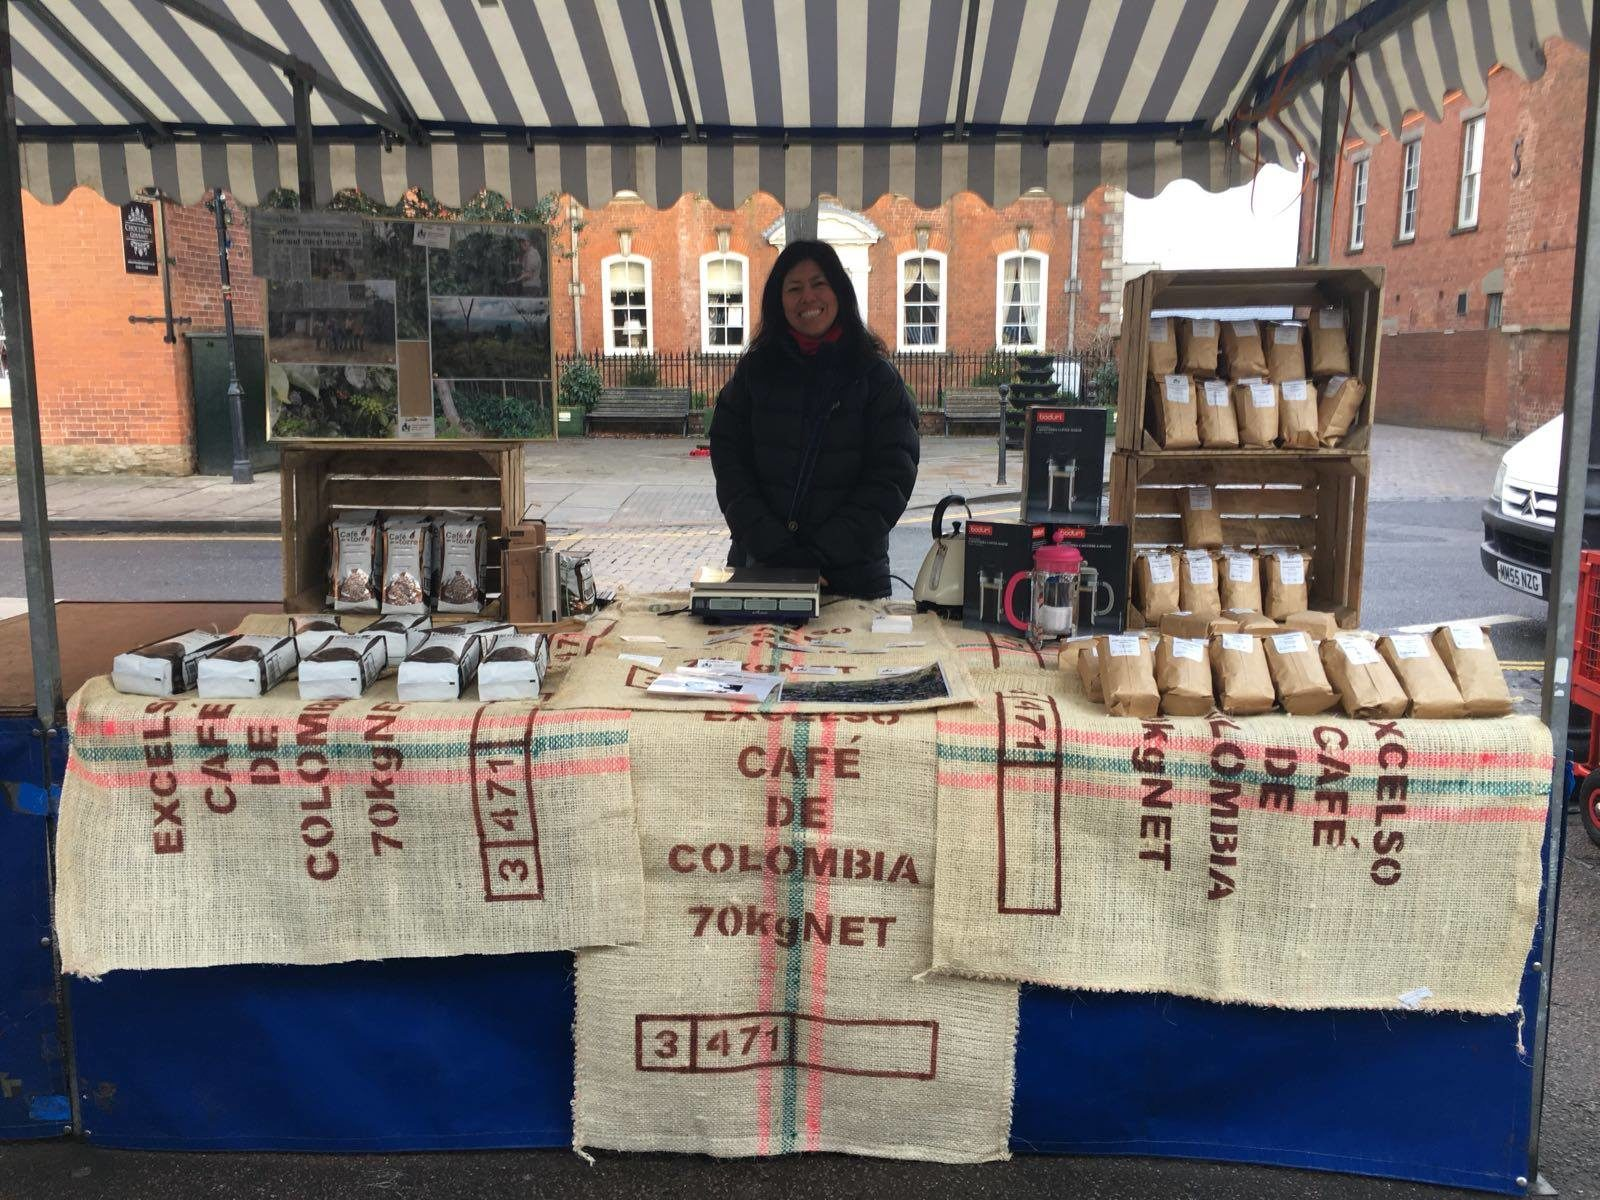 Coffee We Love will be at Ludlow Street Market on Friday the 30th of March